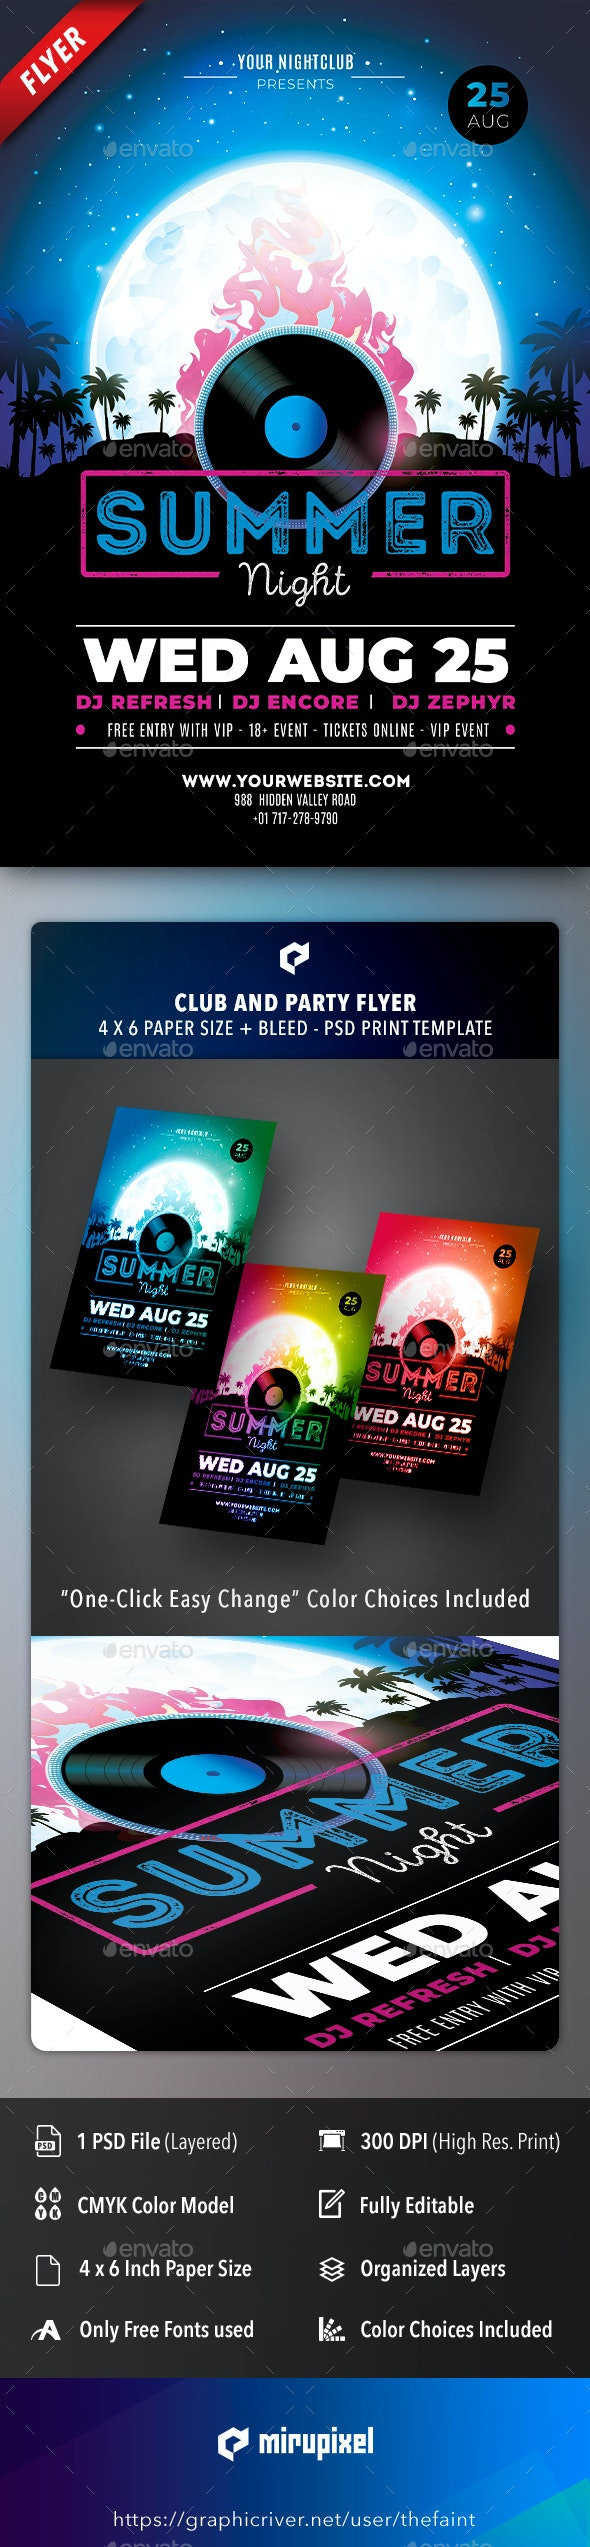 Summer Night Club and Party Flyer - Clubs & Parties Events